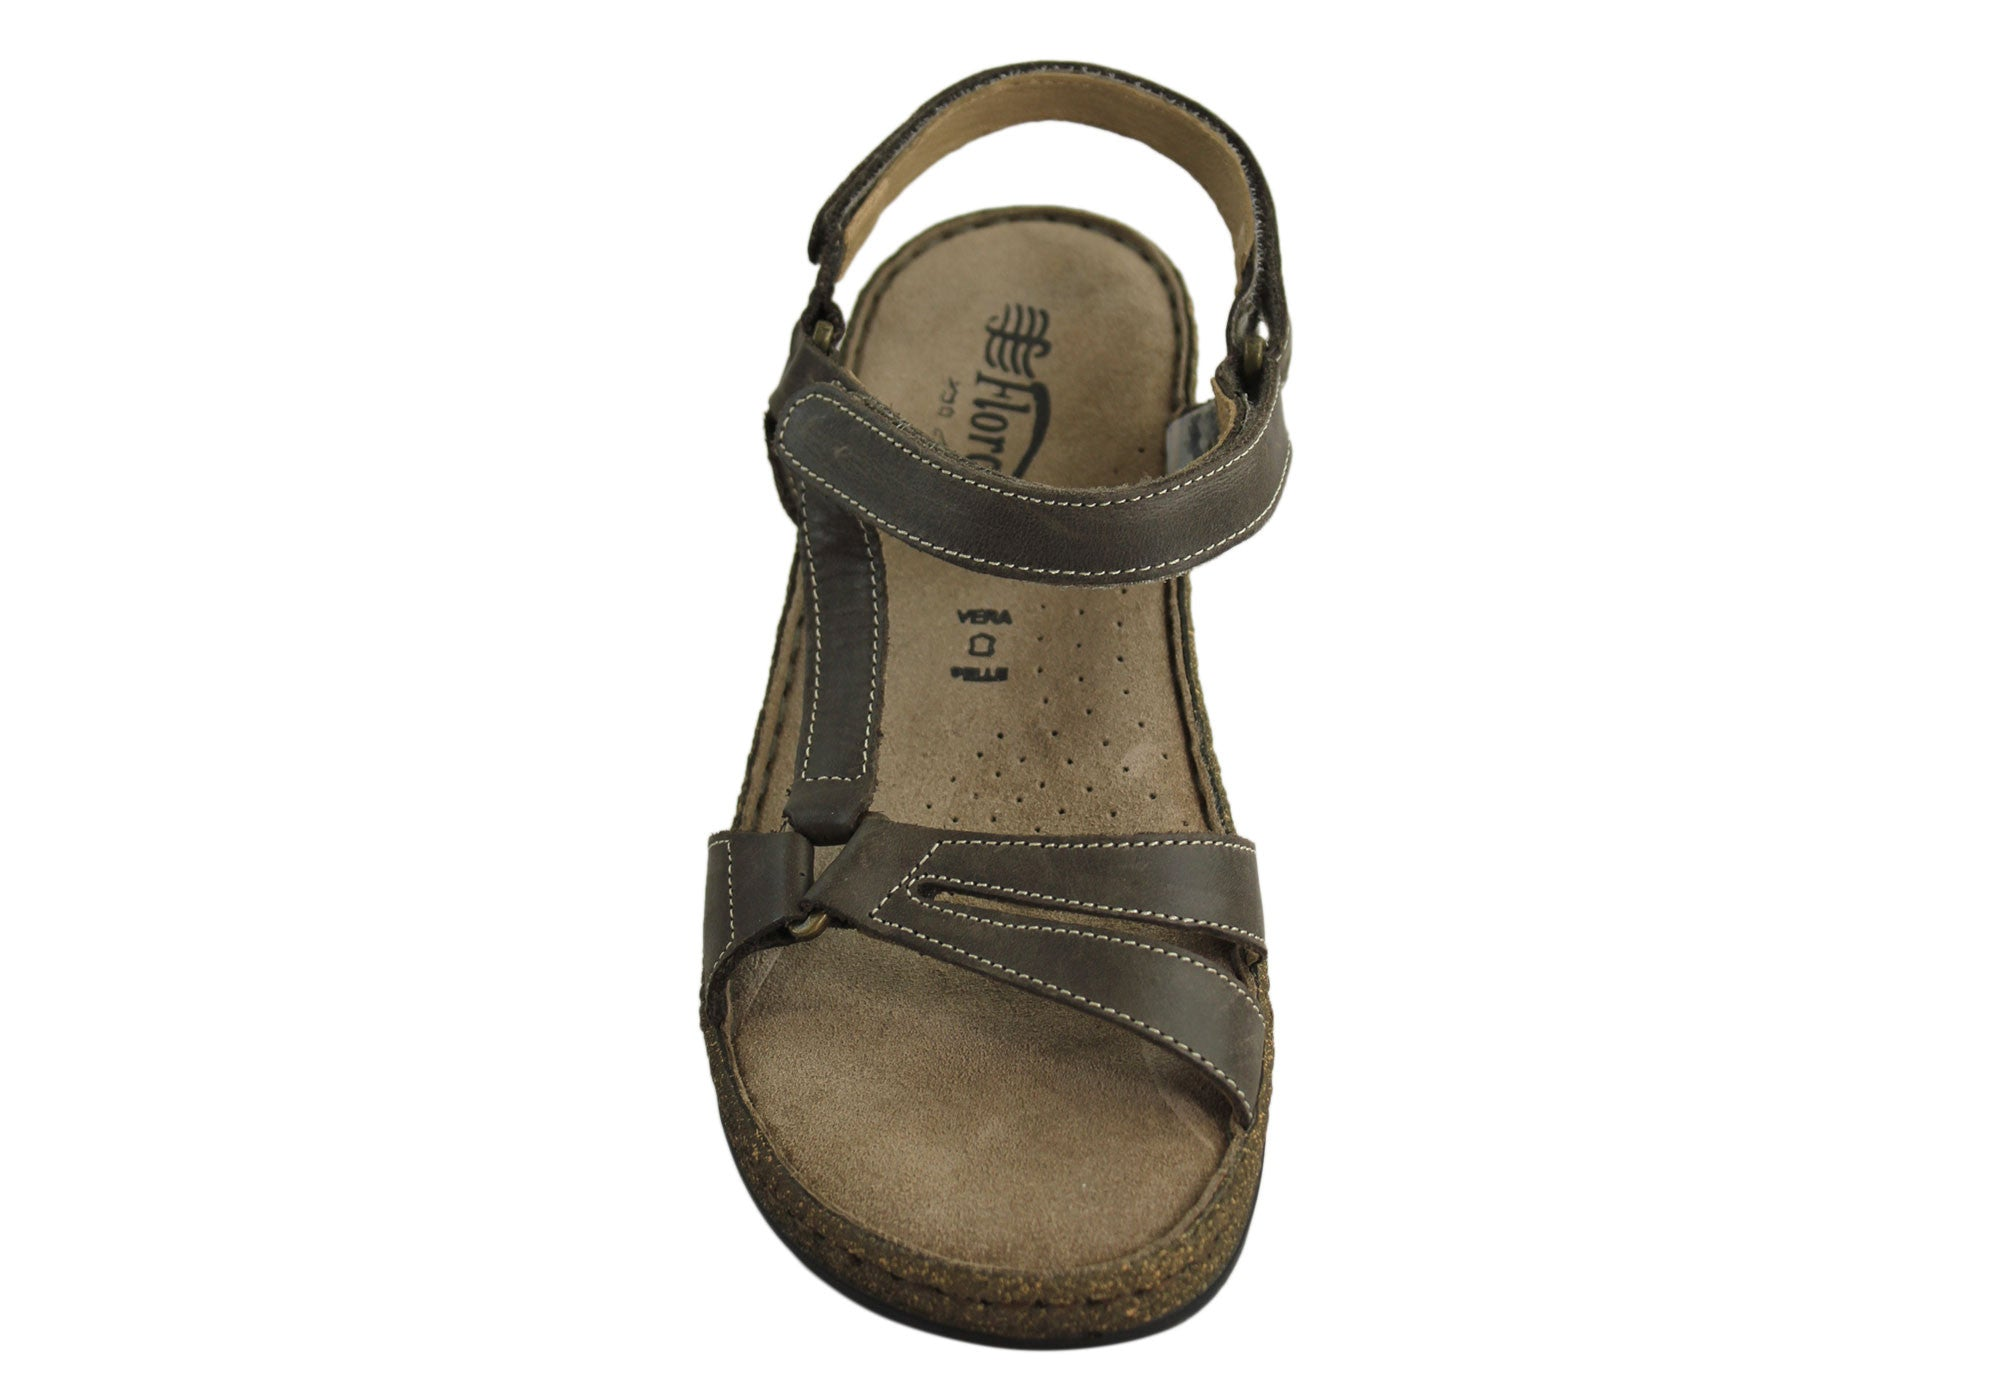 Florance 227101 Womens Leather Sandals Made in Italy